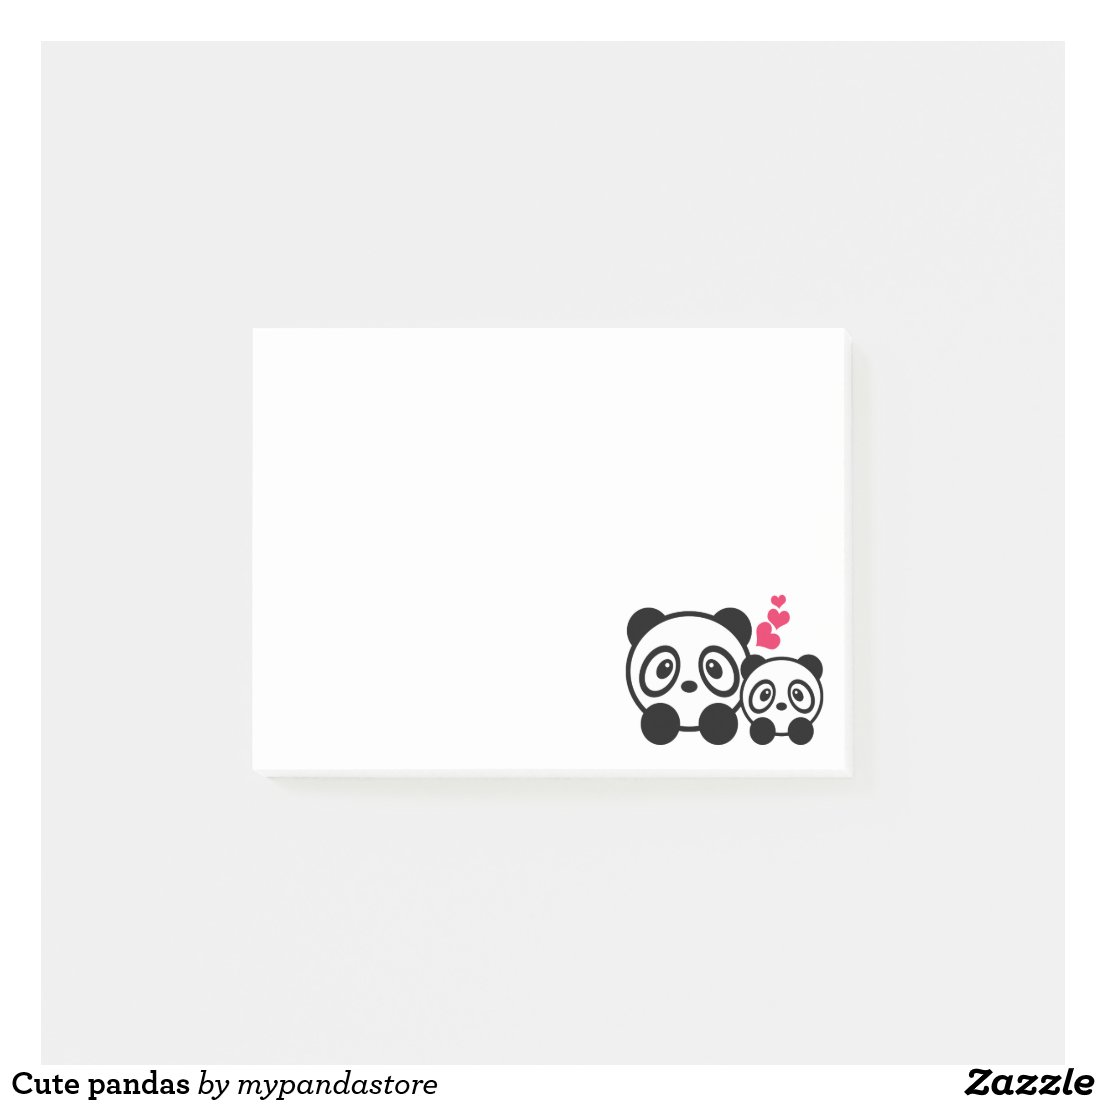 Cute pandas post-it notes